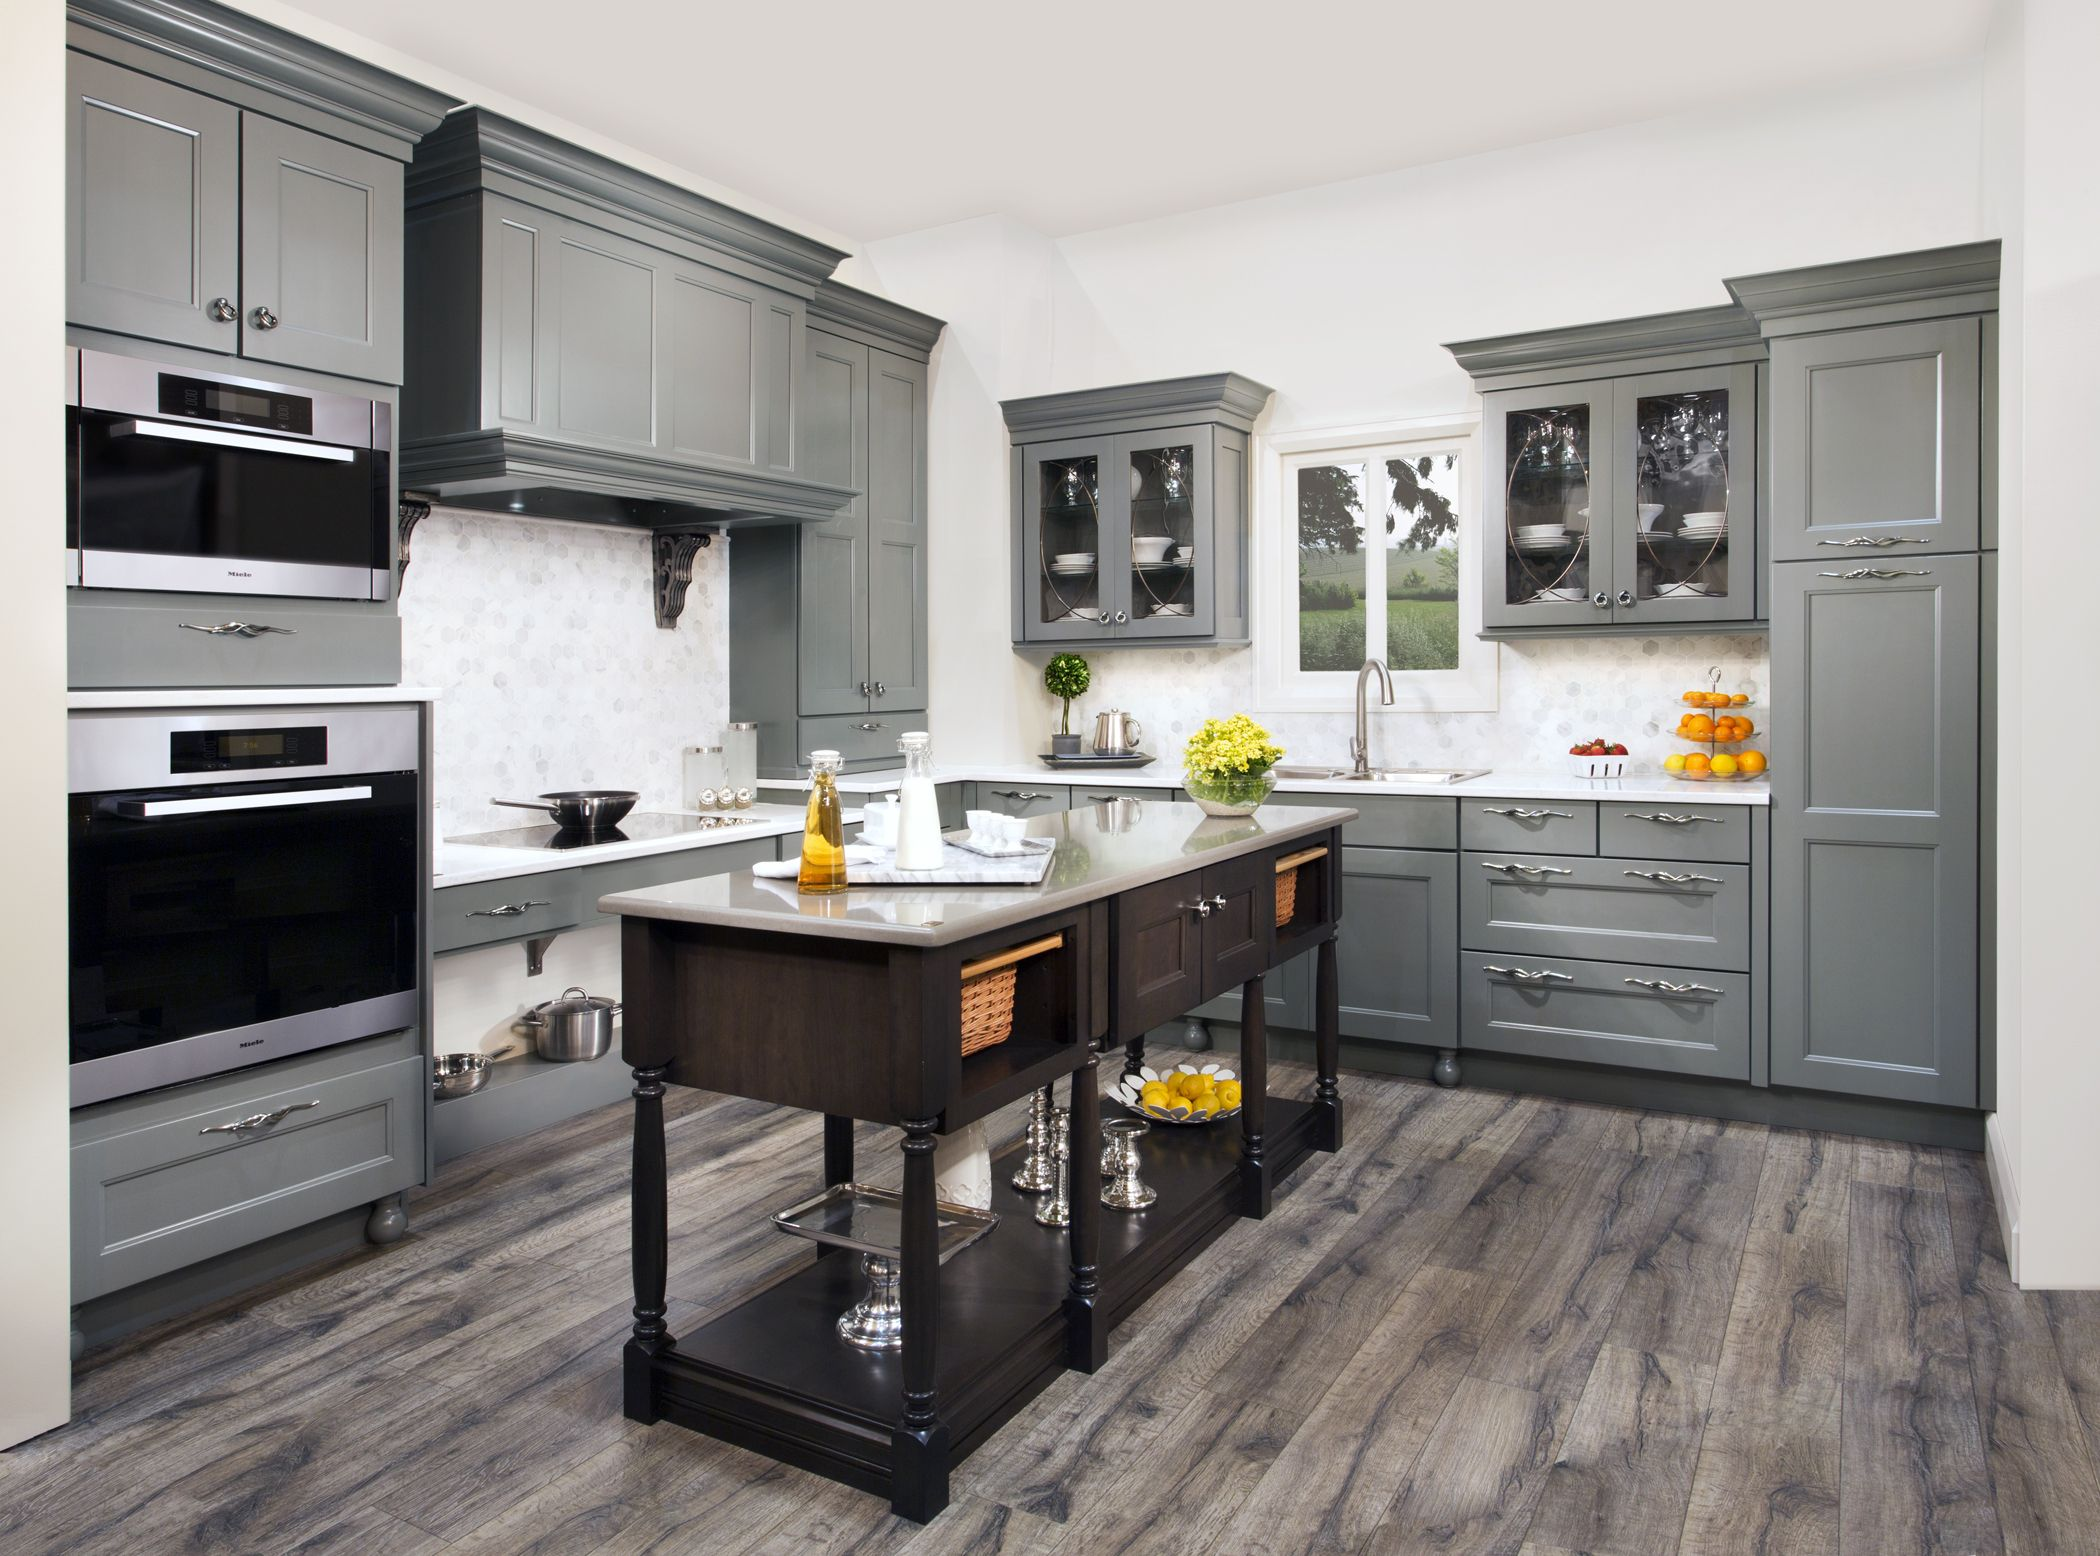 Messina Maple finished in Willow our beautiful new grey